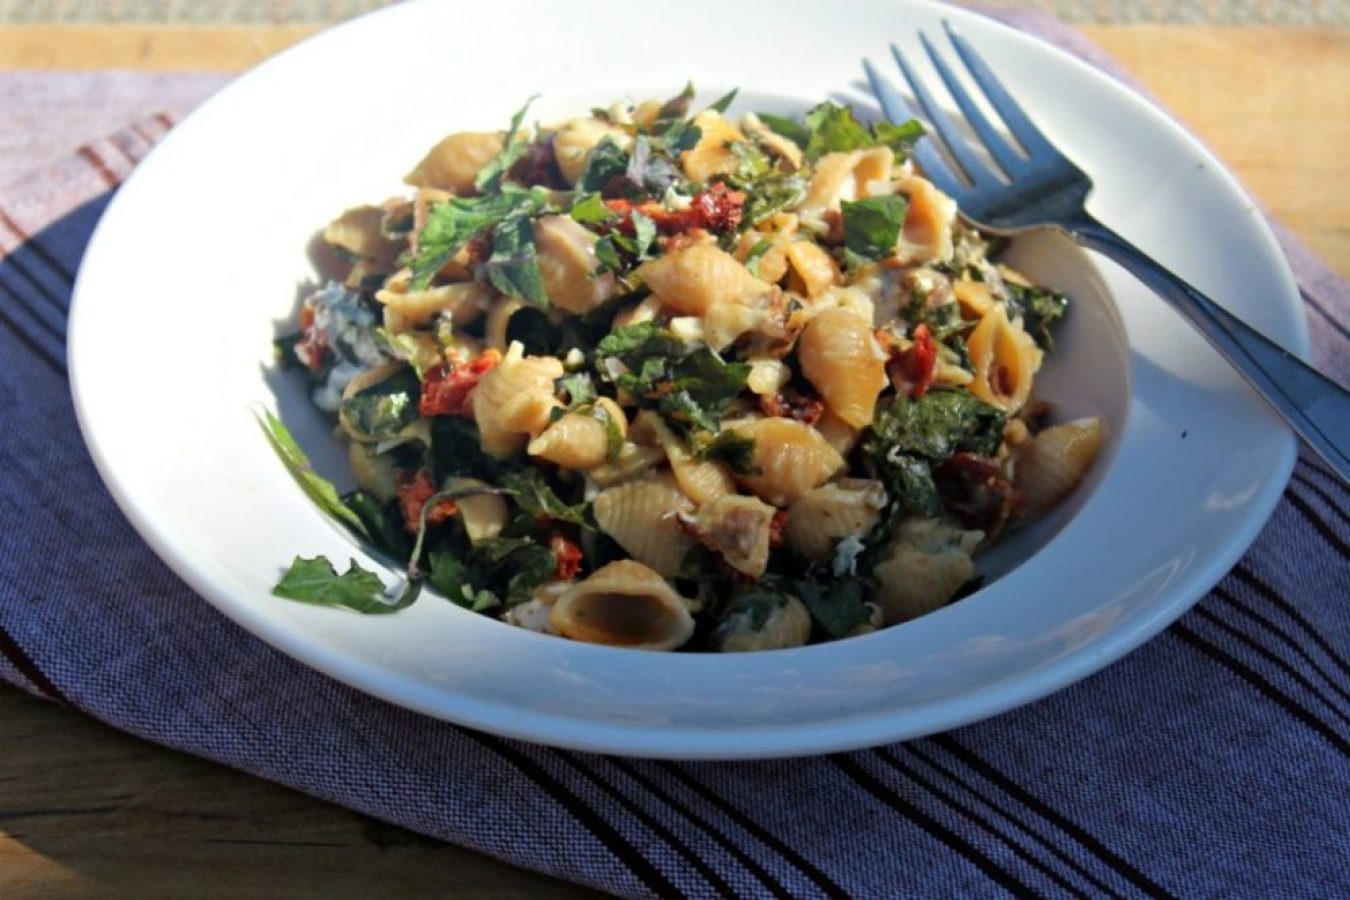 baked-pasta-with-kale-and-turkey-sausage-simpleandsavory-com